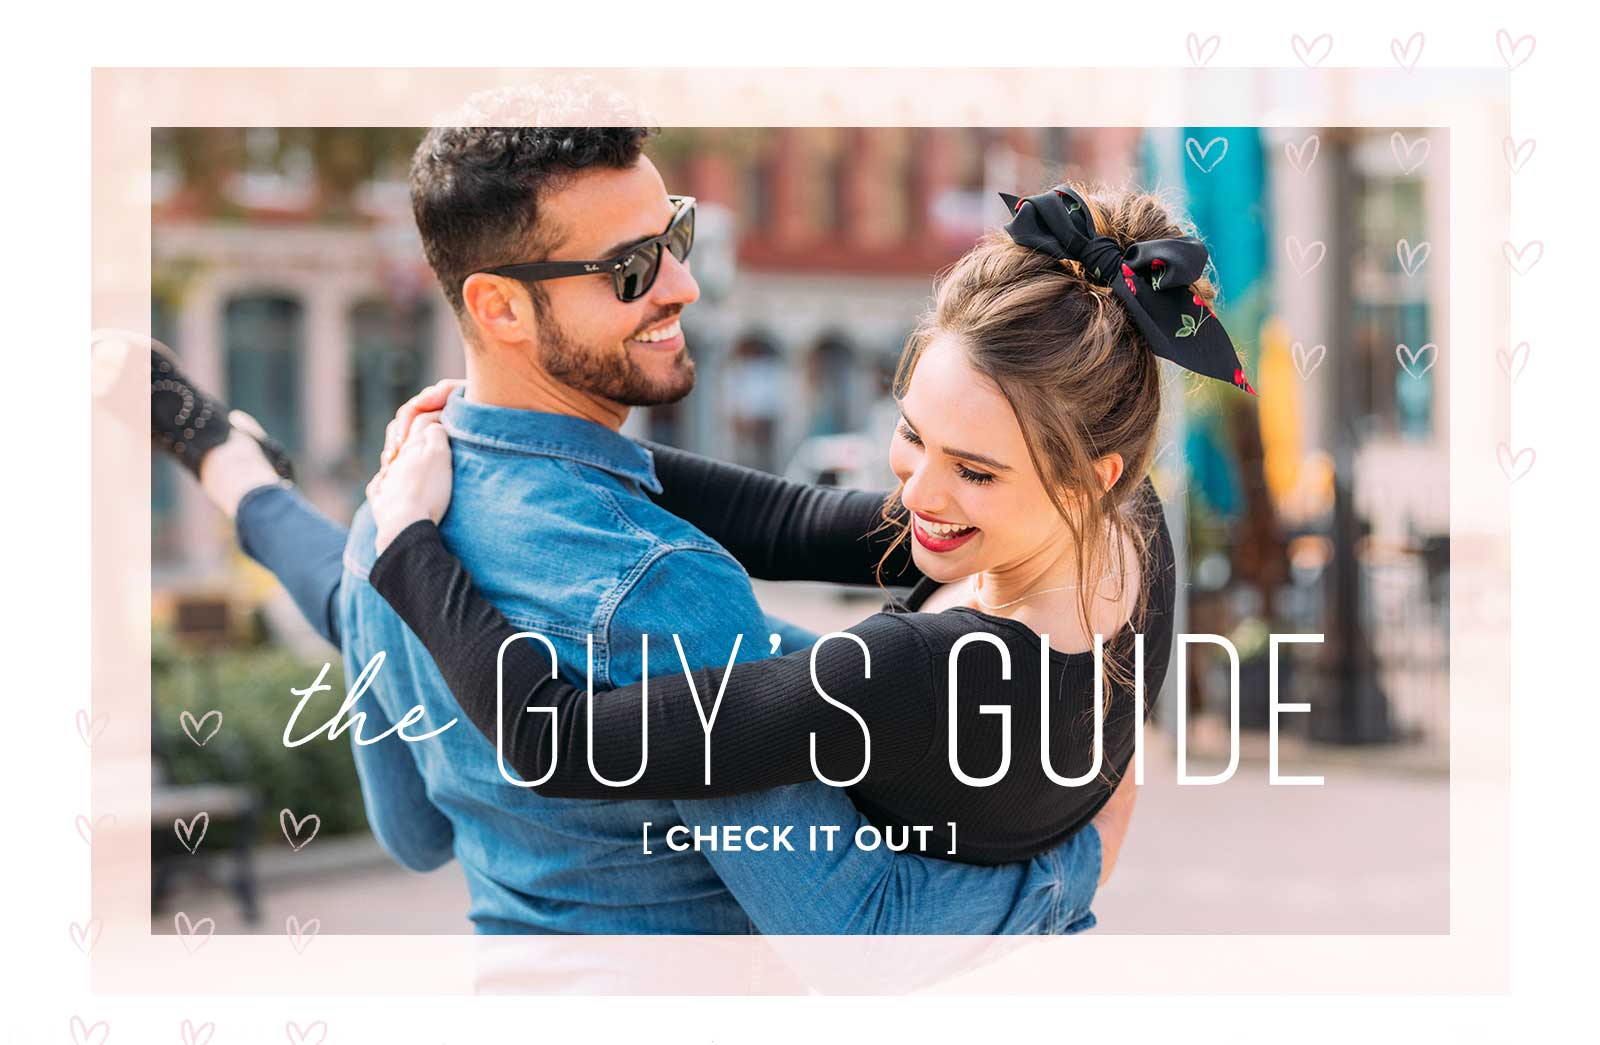 SHOP THE GUY'S GUIDE